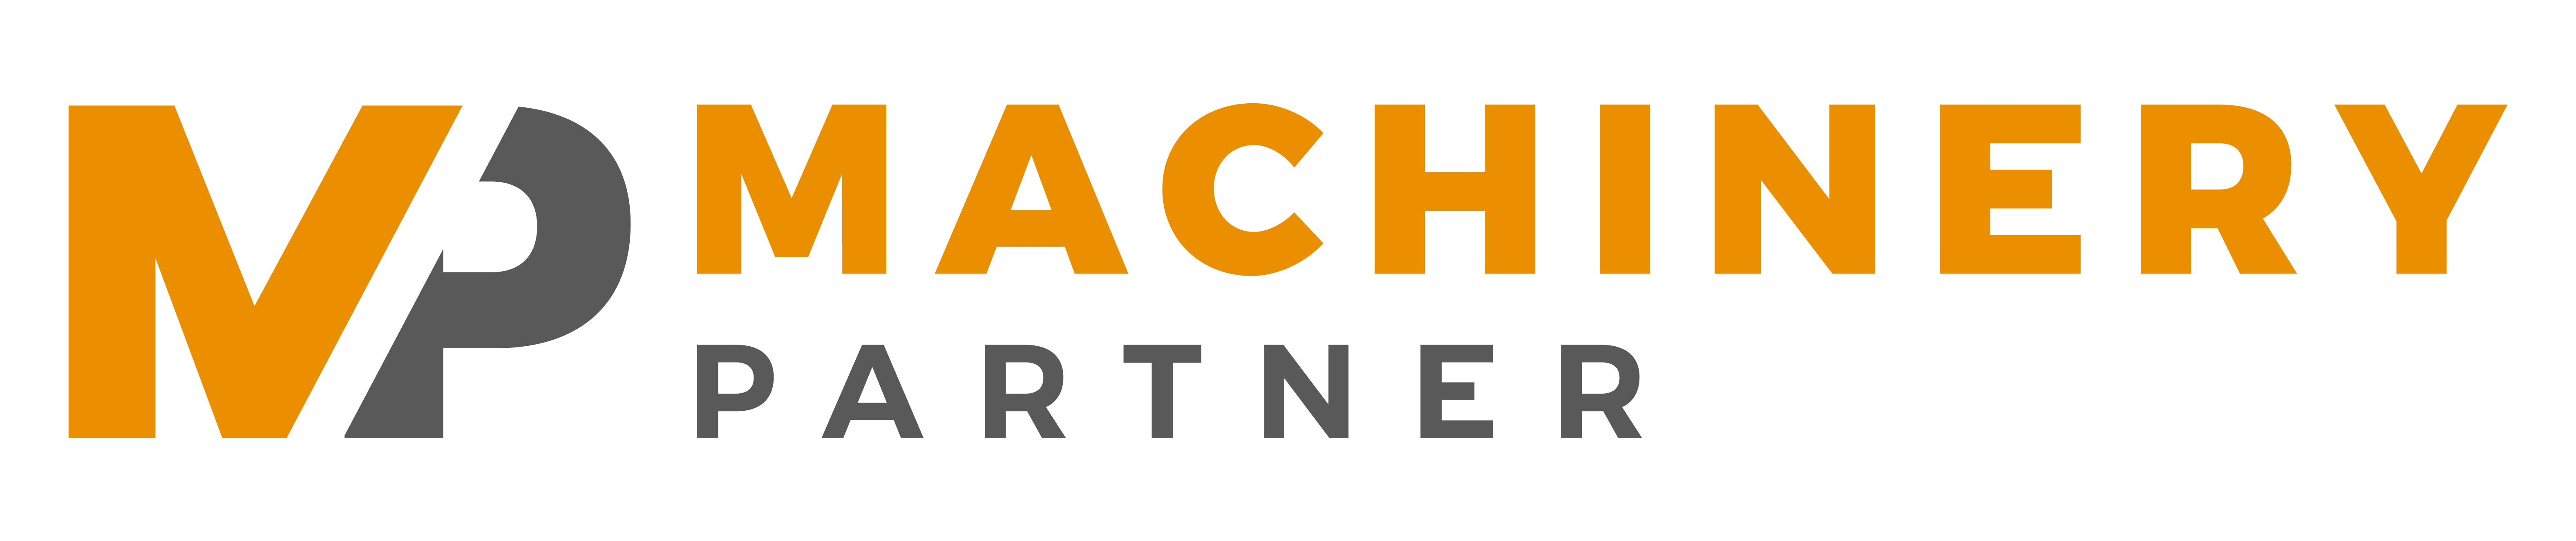 Machinery partner footer logo